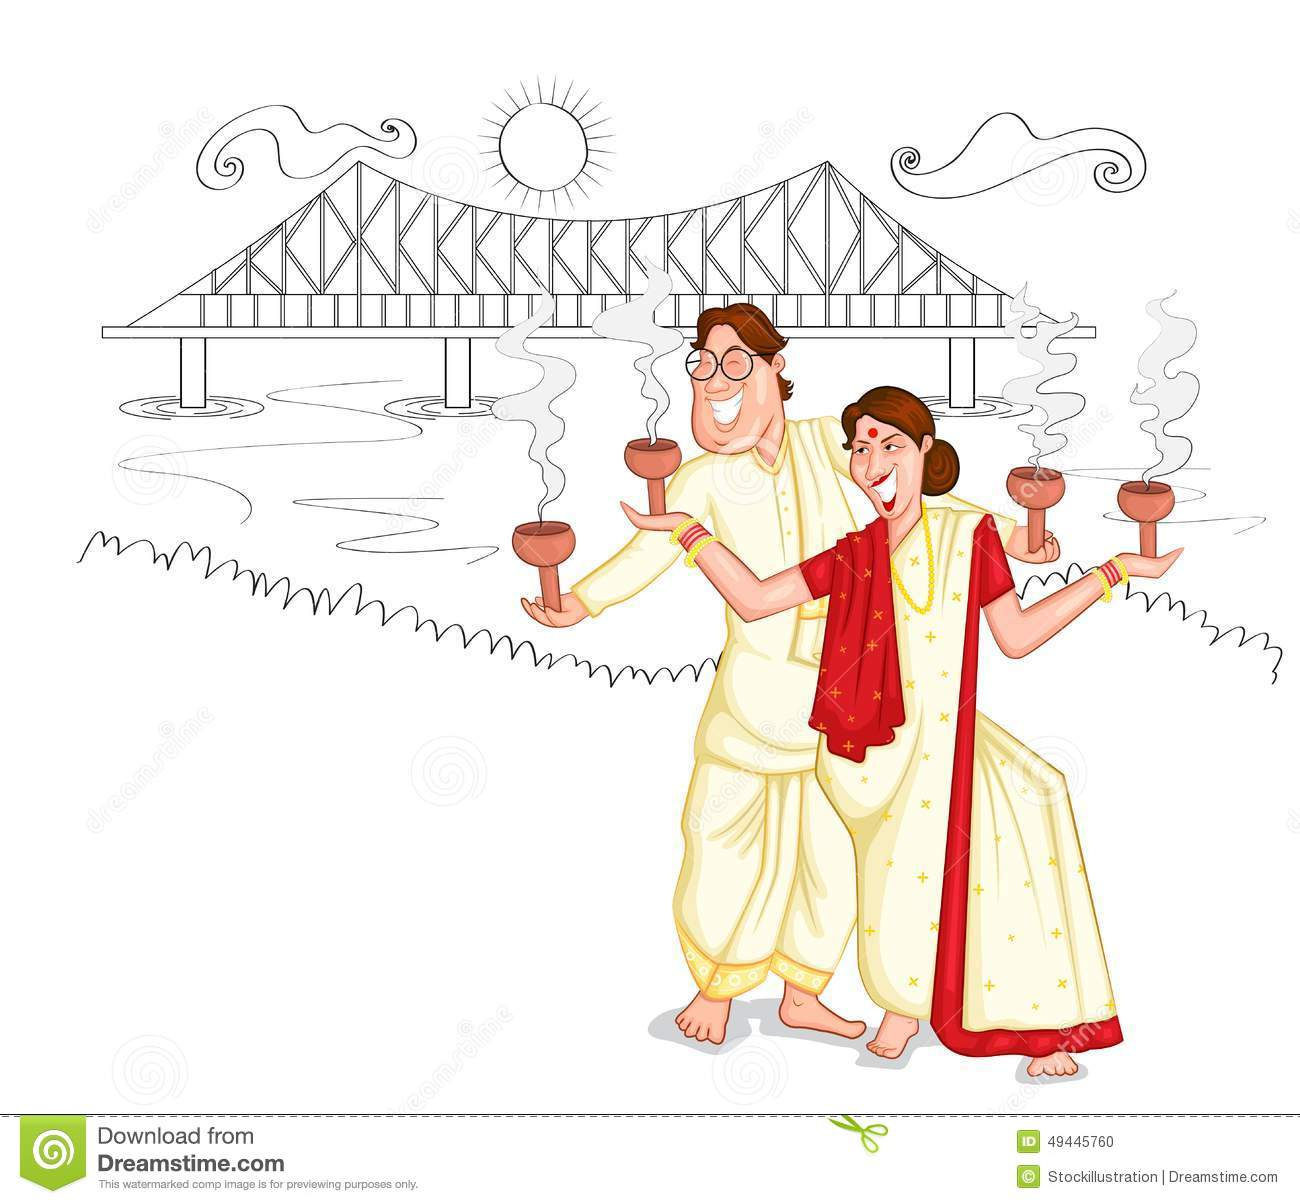 West bengal clipart.